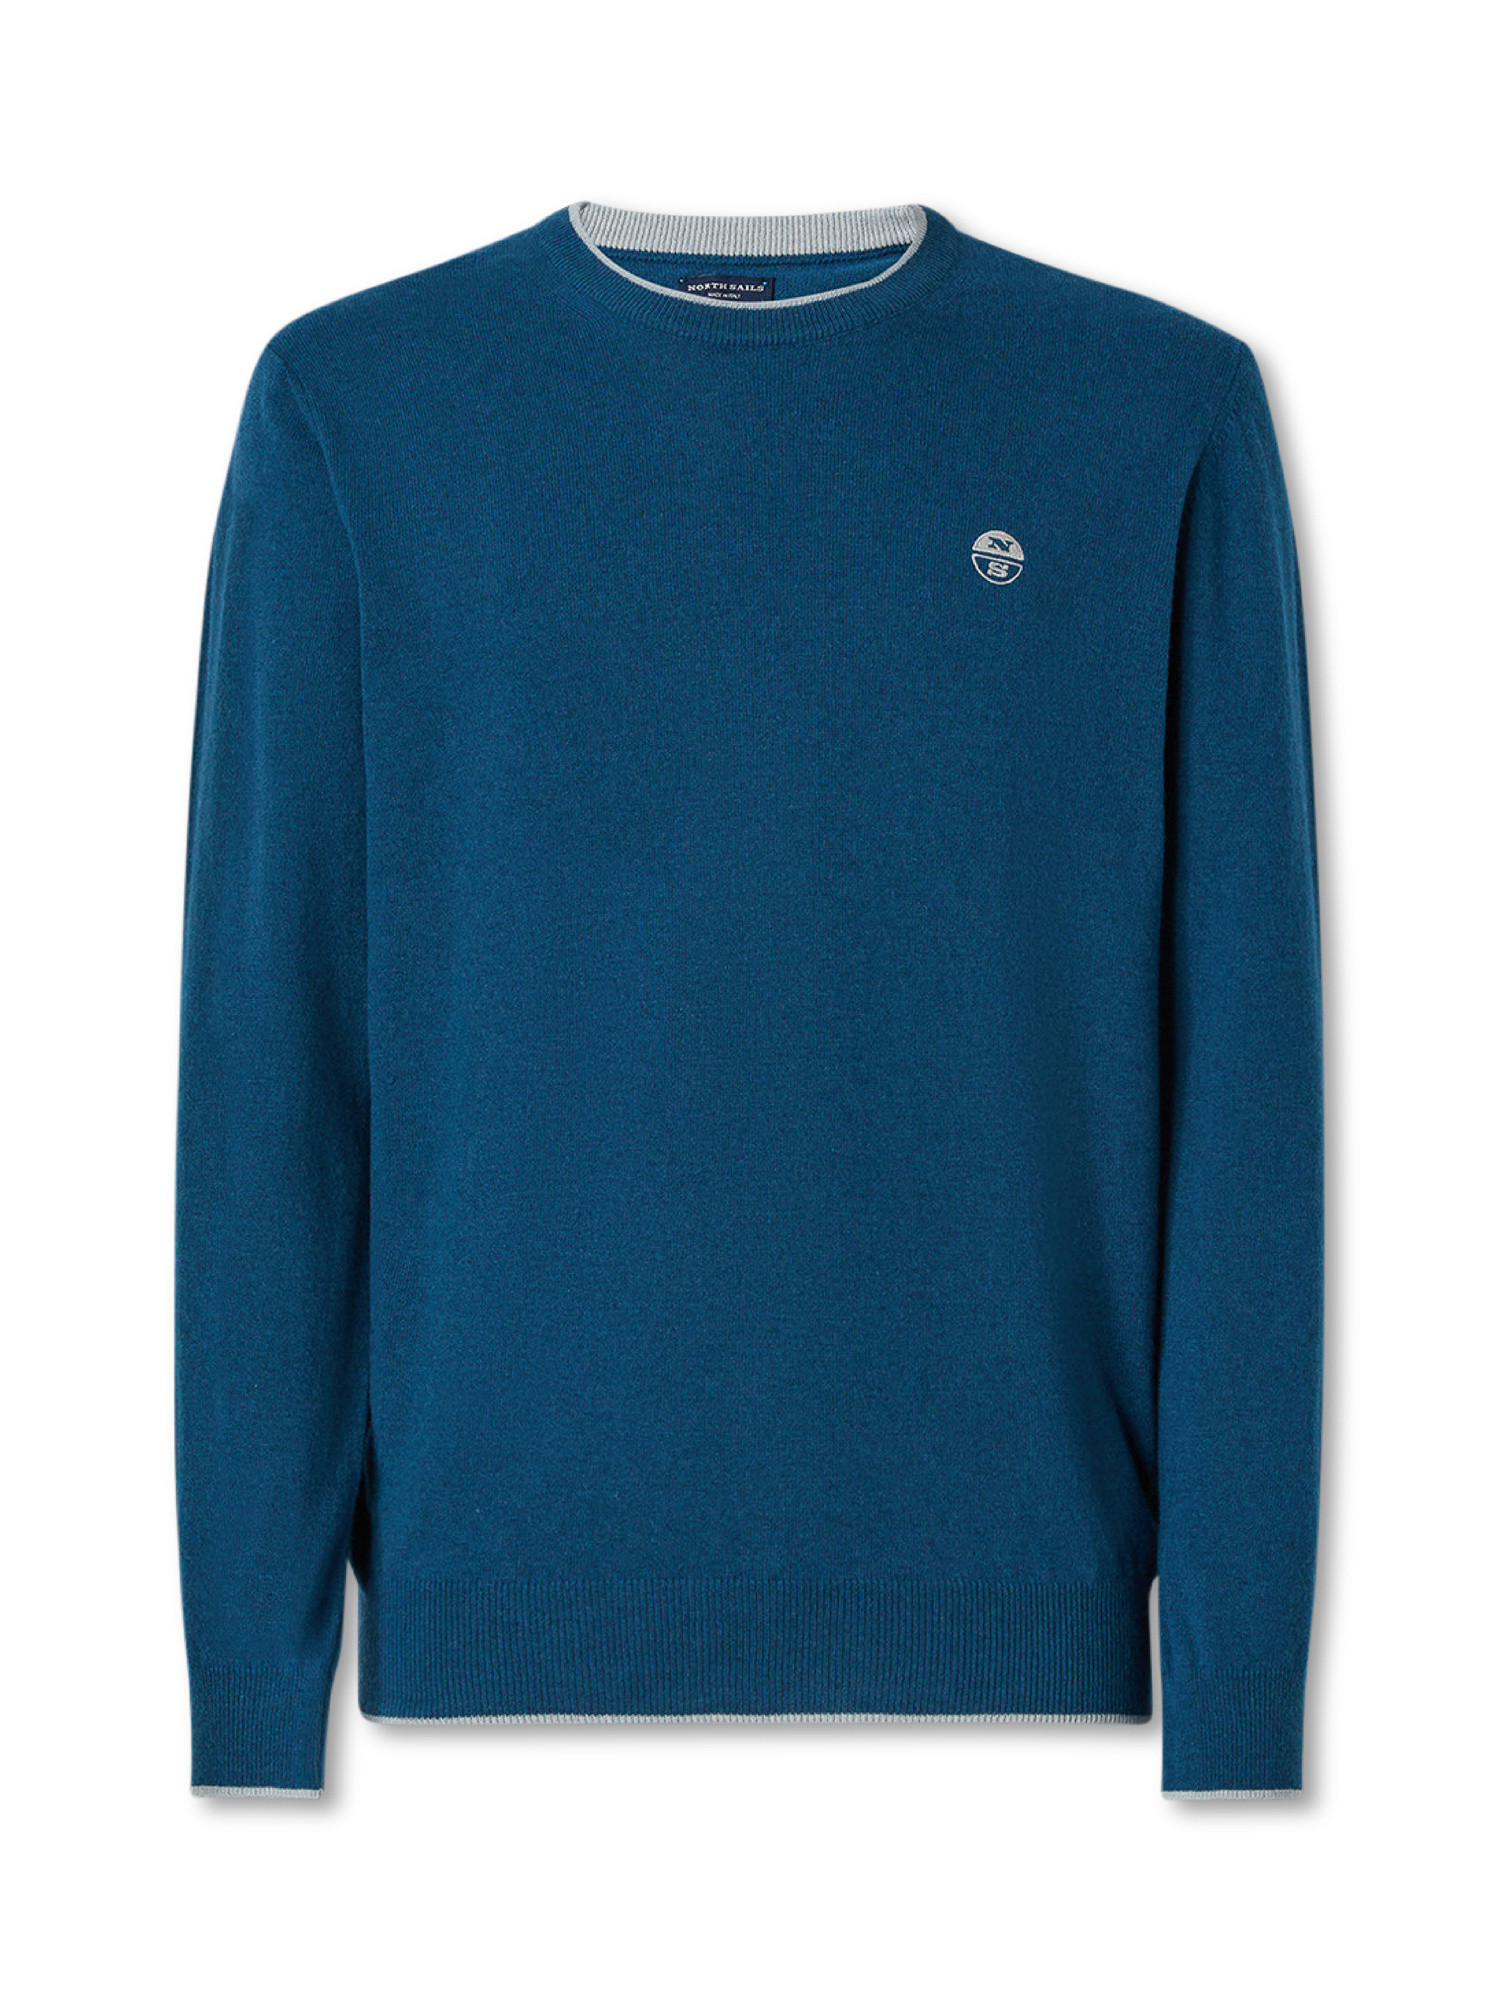 Maglia in eco cachemire, Blu, large image number 0